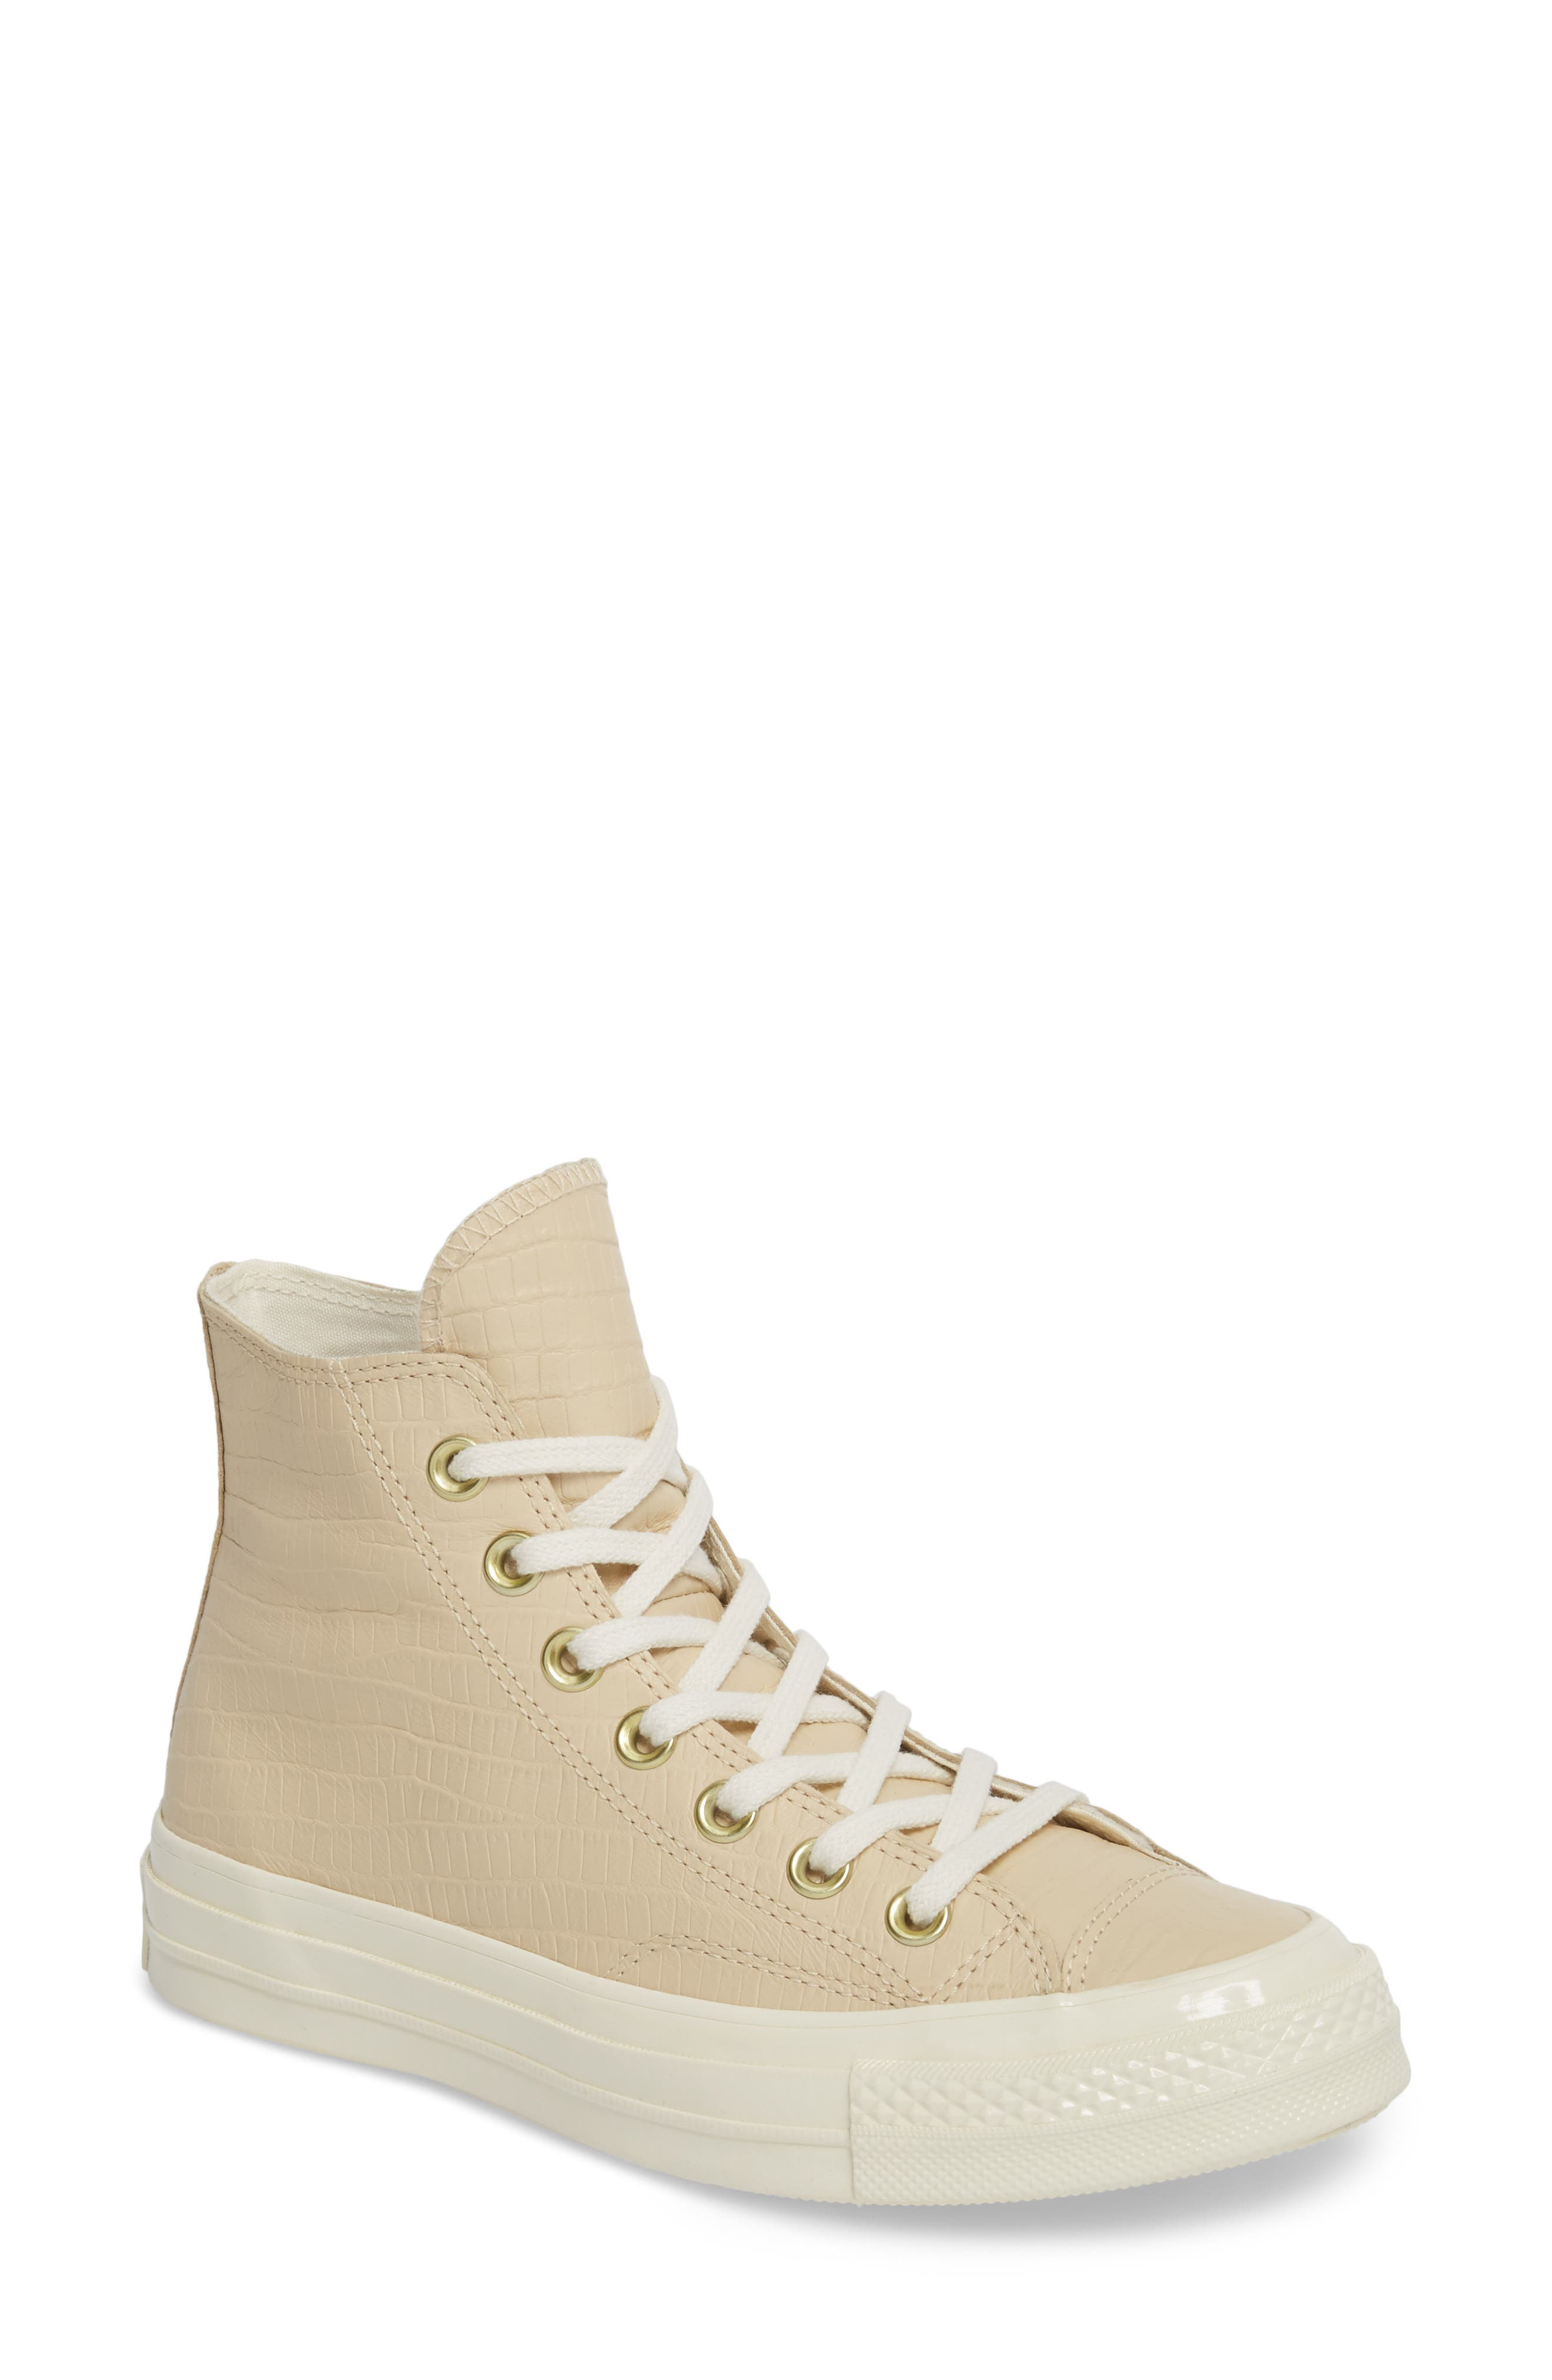 Chuck Taylor<sup>®</sup> All Star<sup>®</sup> CT 70 Reptile High Top Sneaker,                             Main thumbnail 1, color,                             Light Twine